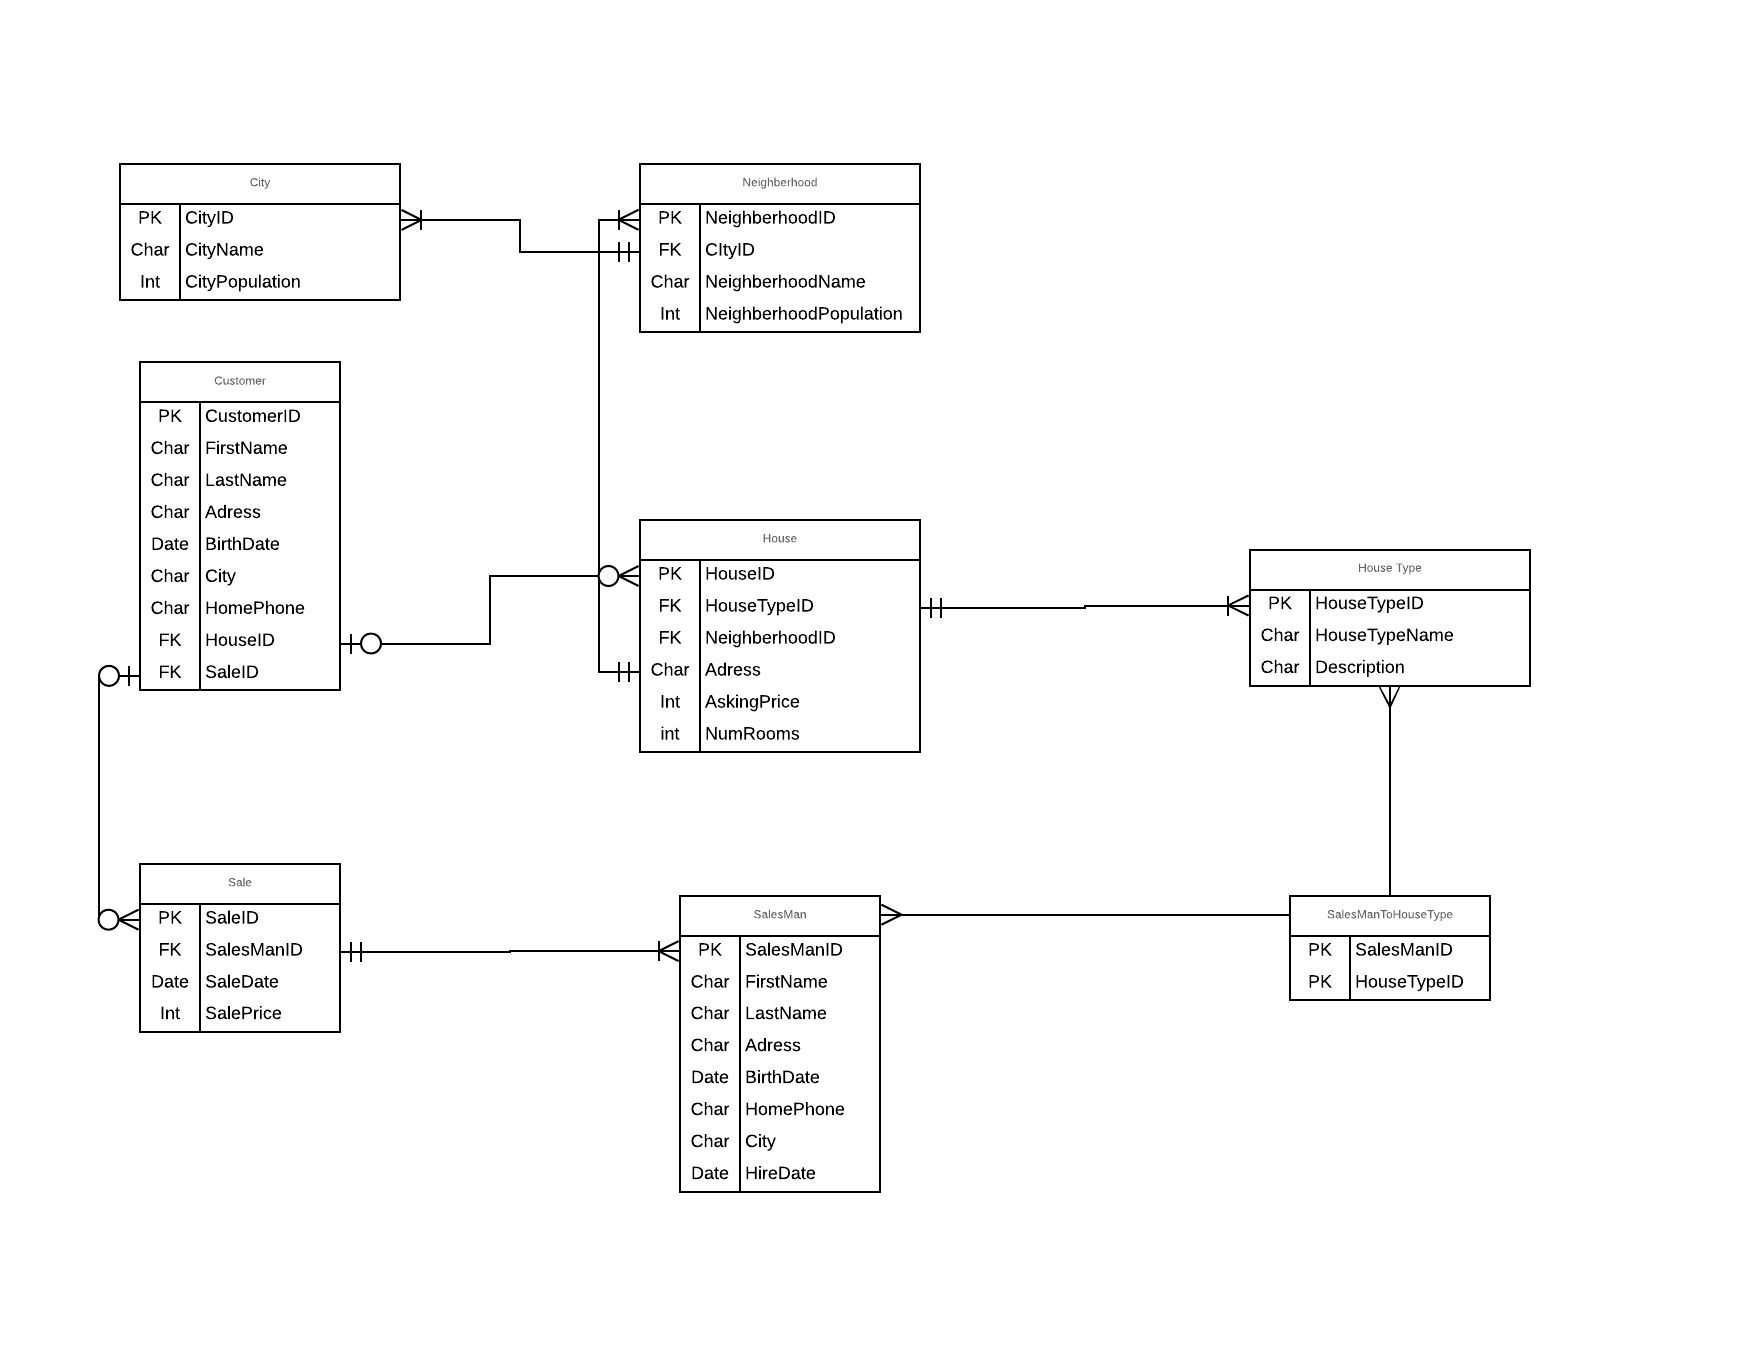 Creating Erd And Sql Tables Based On The Erd - Stack Overflow with regard to Database Design And Erd Creation